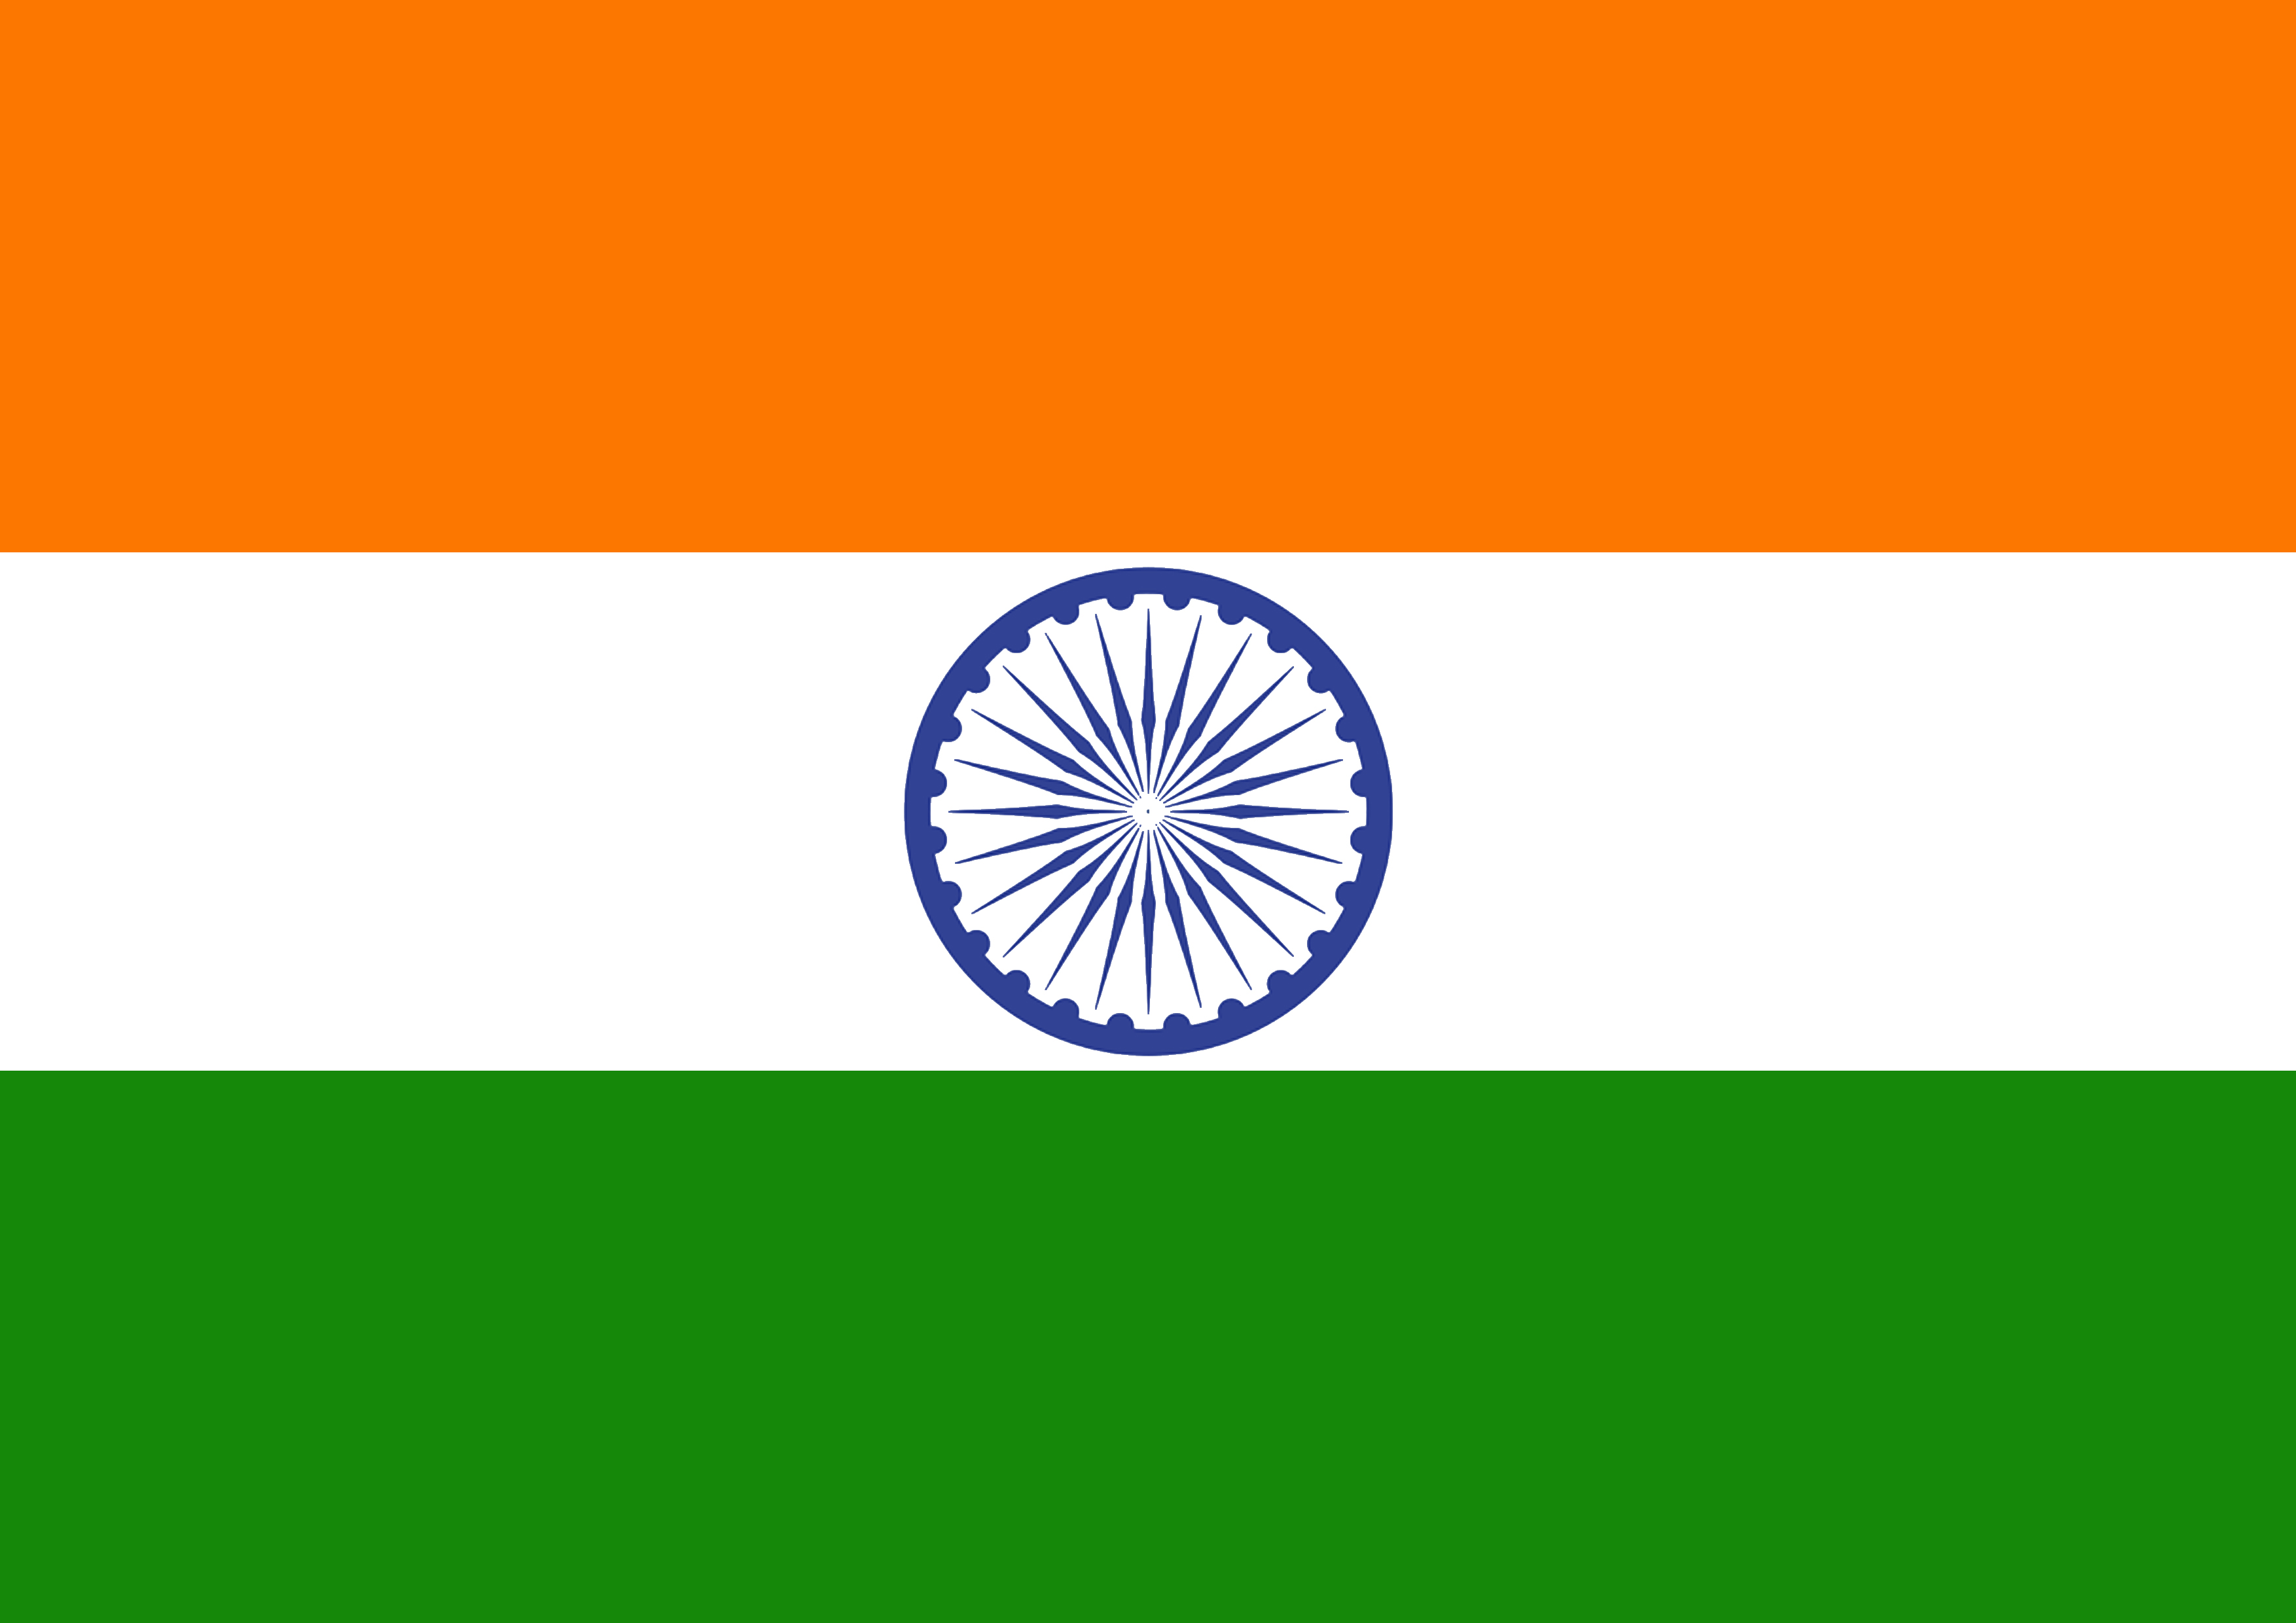 National Flag of India Images, History of Indian Flag